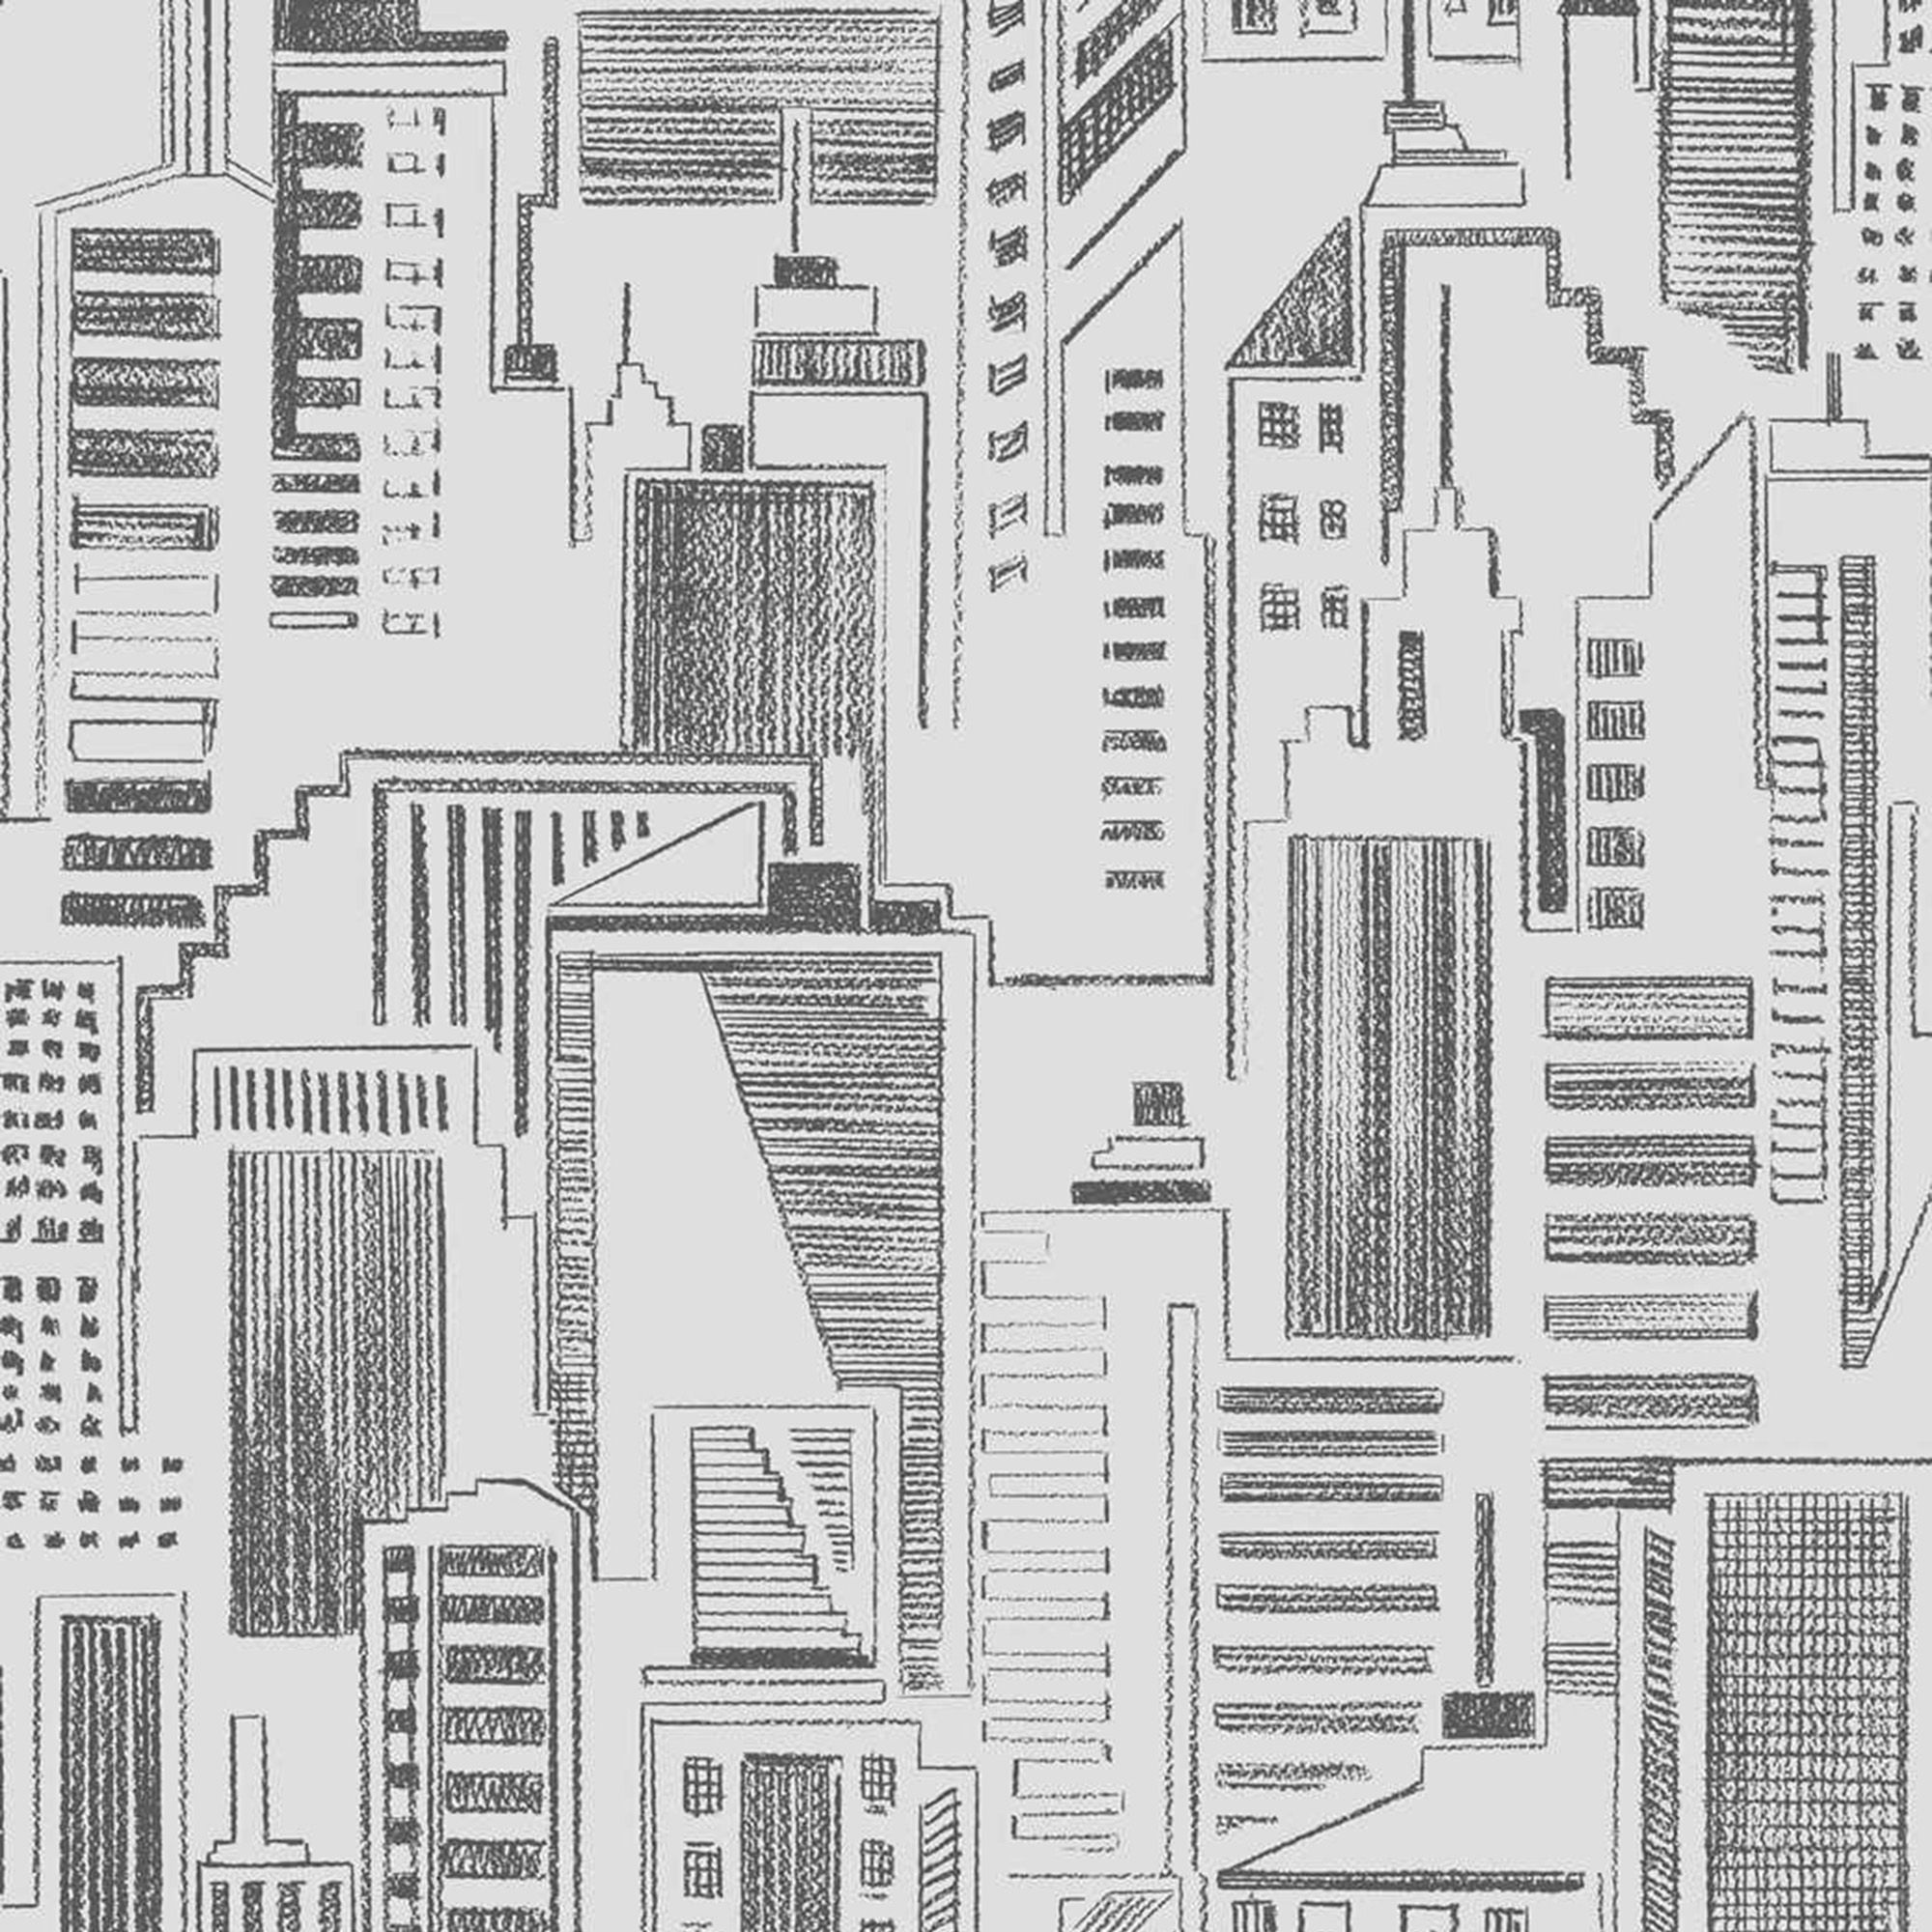 Contour Aurora Wallpaper From B Q: Contour Sketch Black & White Cityscape Wallpaper